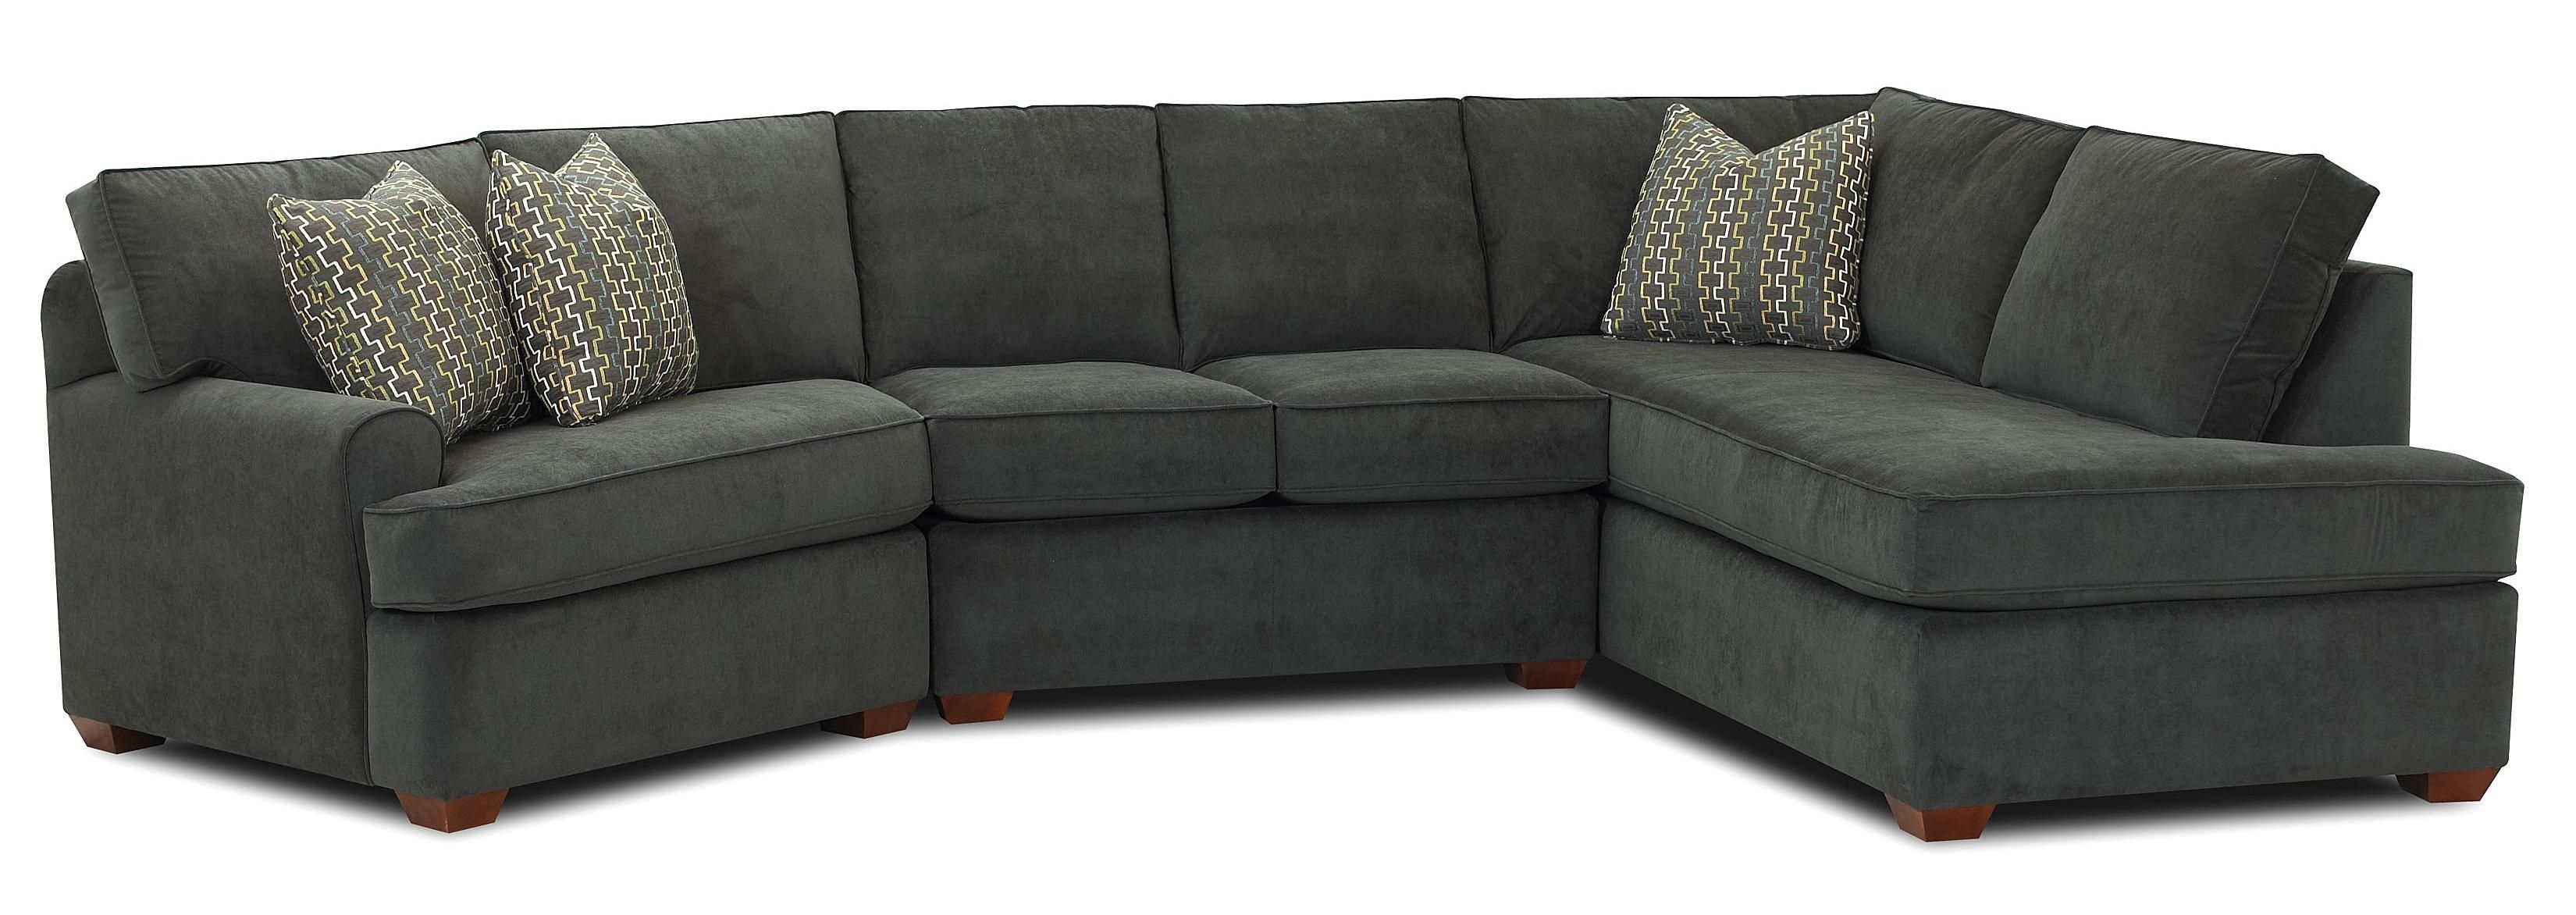 Right Angled Sectional Sofa | Http://ml2R | Pinterest Pertaining To Sectional Sofas At Brampton (Image 8 of 10)